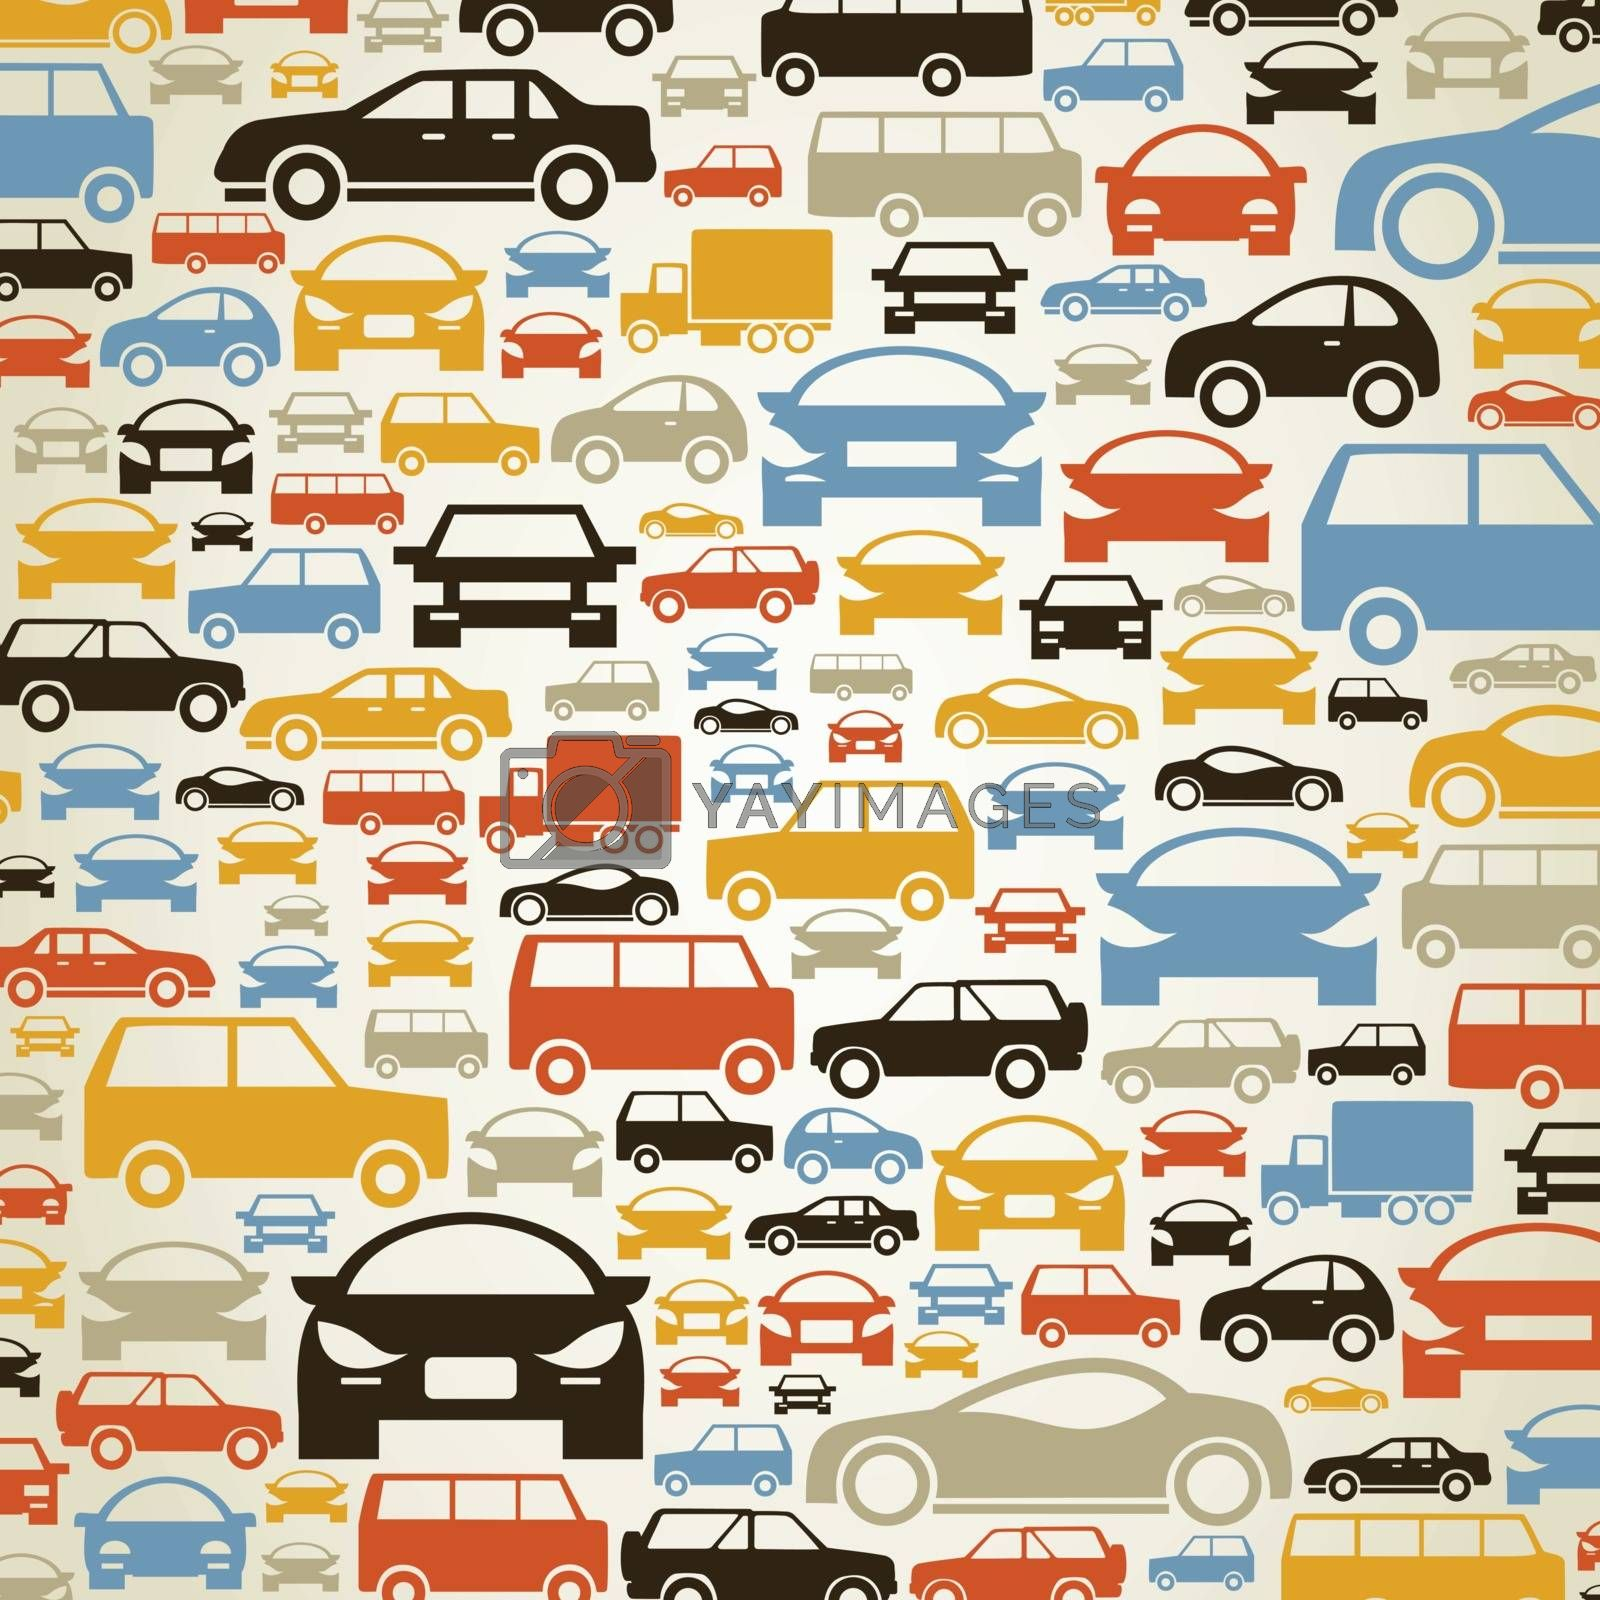 Background made of cars. A vector illustration